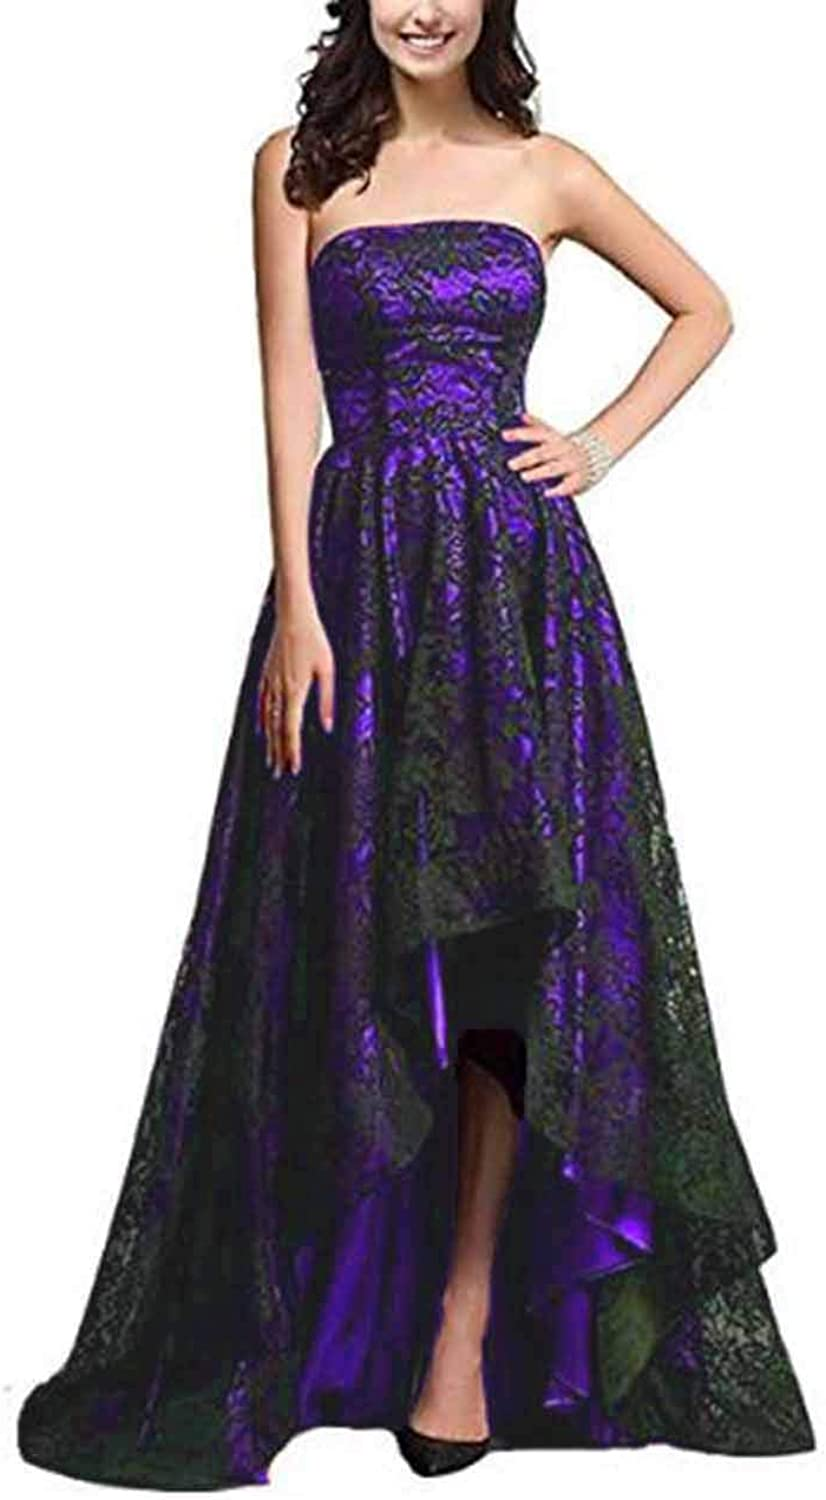 Alilith.Z Sexy Strapless High Low Prom Dresses Black Lace Long Formal Evening Dresses Party Gowns for Women